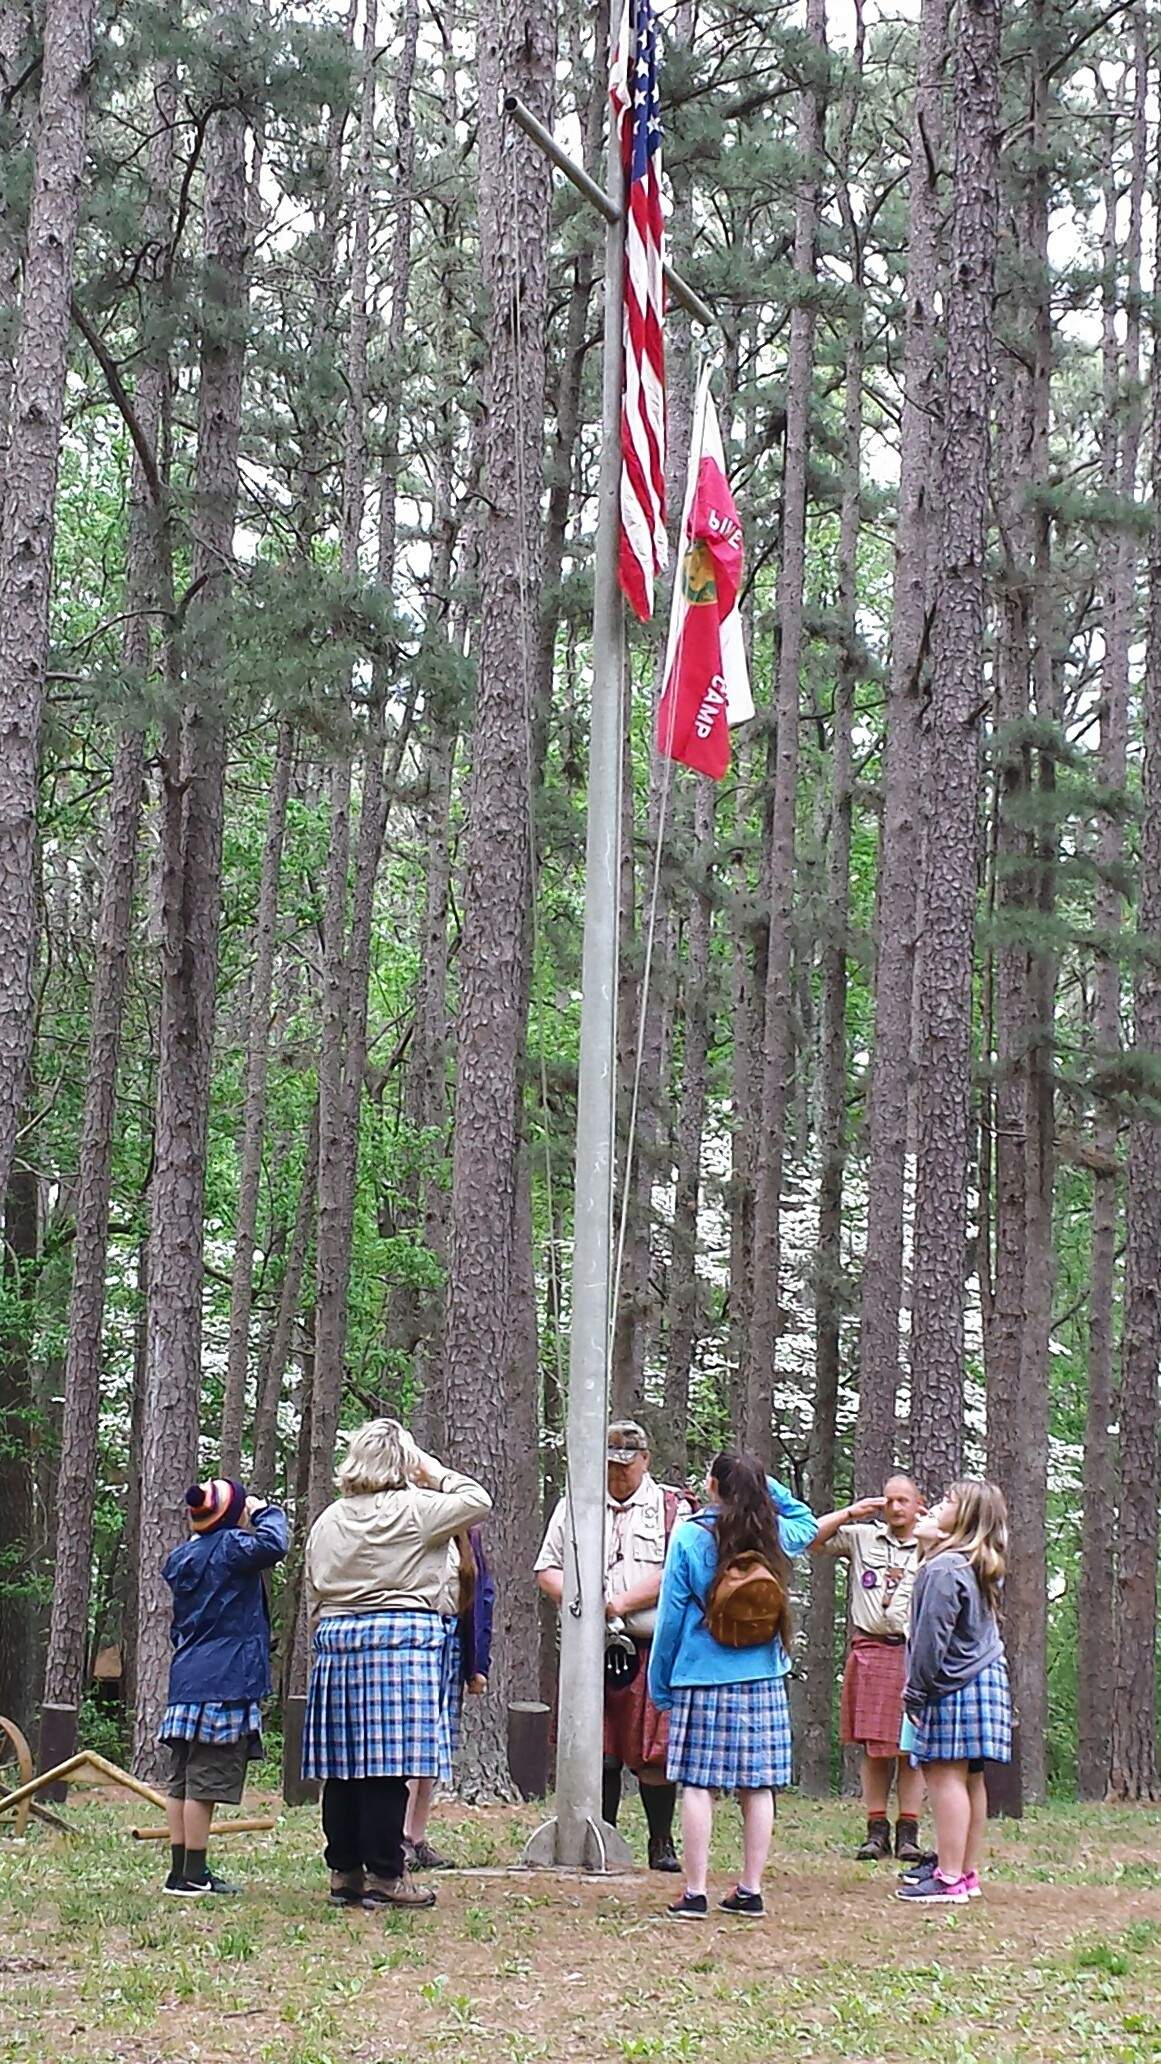 TRAVIS DENEAL PHOTOMembers of Scouts BSA Troop 156G of Christopher salute the flag at the opening ceremonies of the Spring Camporee Highland Games at Pine Ridge Scout Camp. The all-girl troop had the honor of raising the flag at the ceremonies.